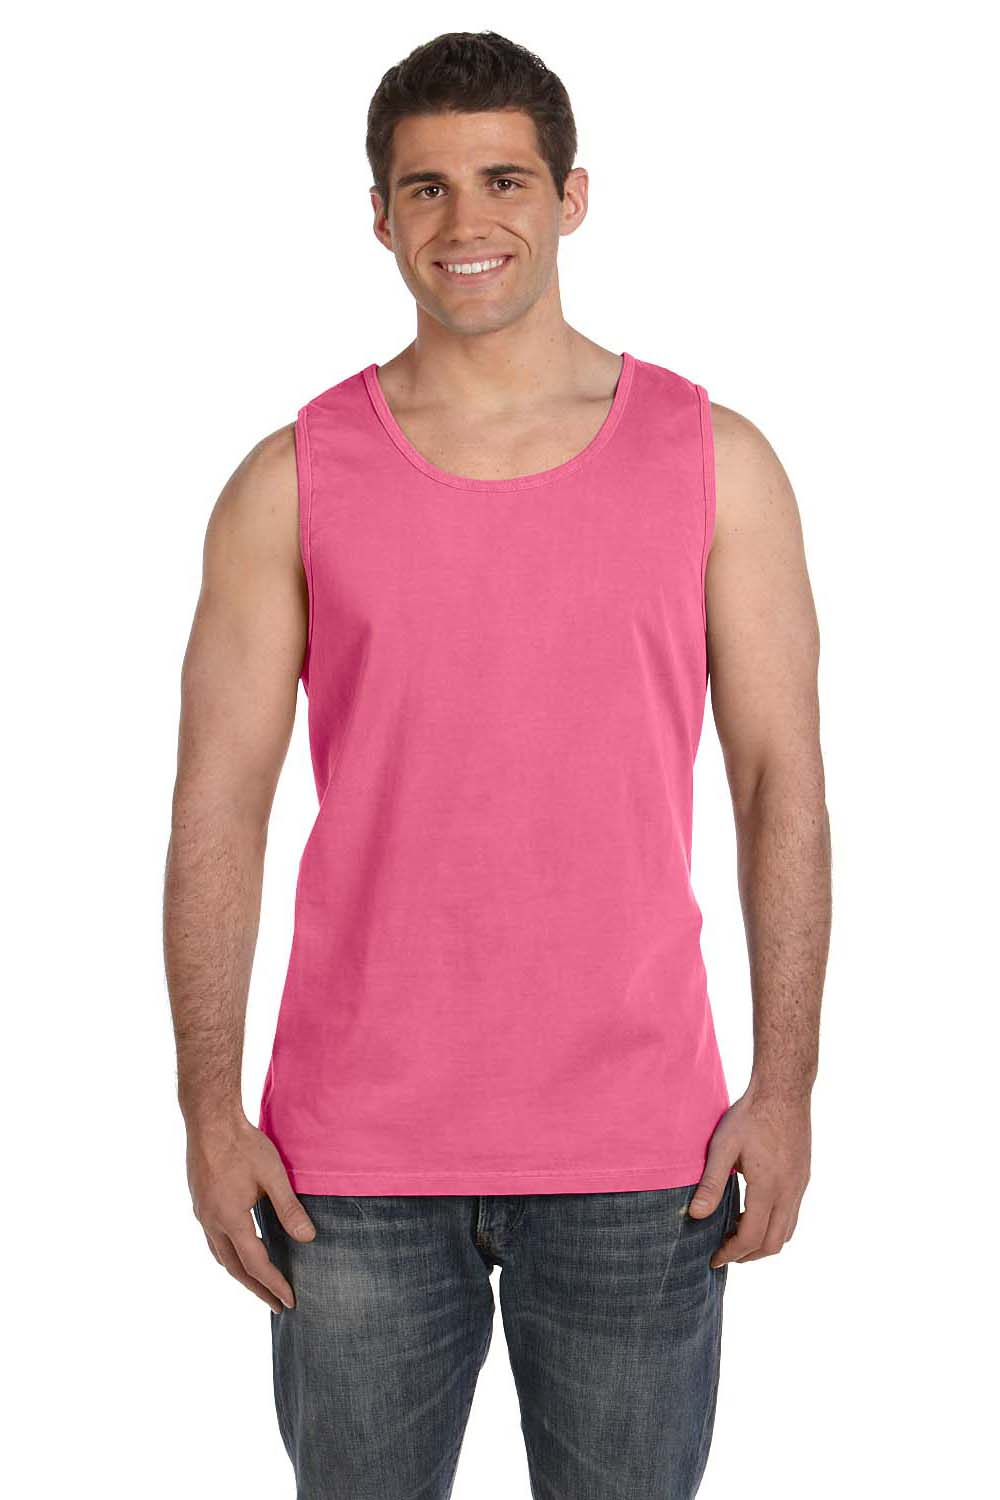 Comfort Colors C9360 Mens Tank Top Crunchberry Pink Front